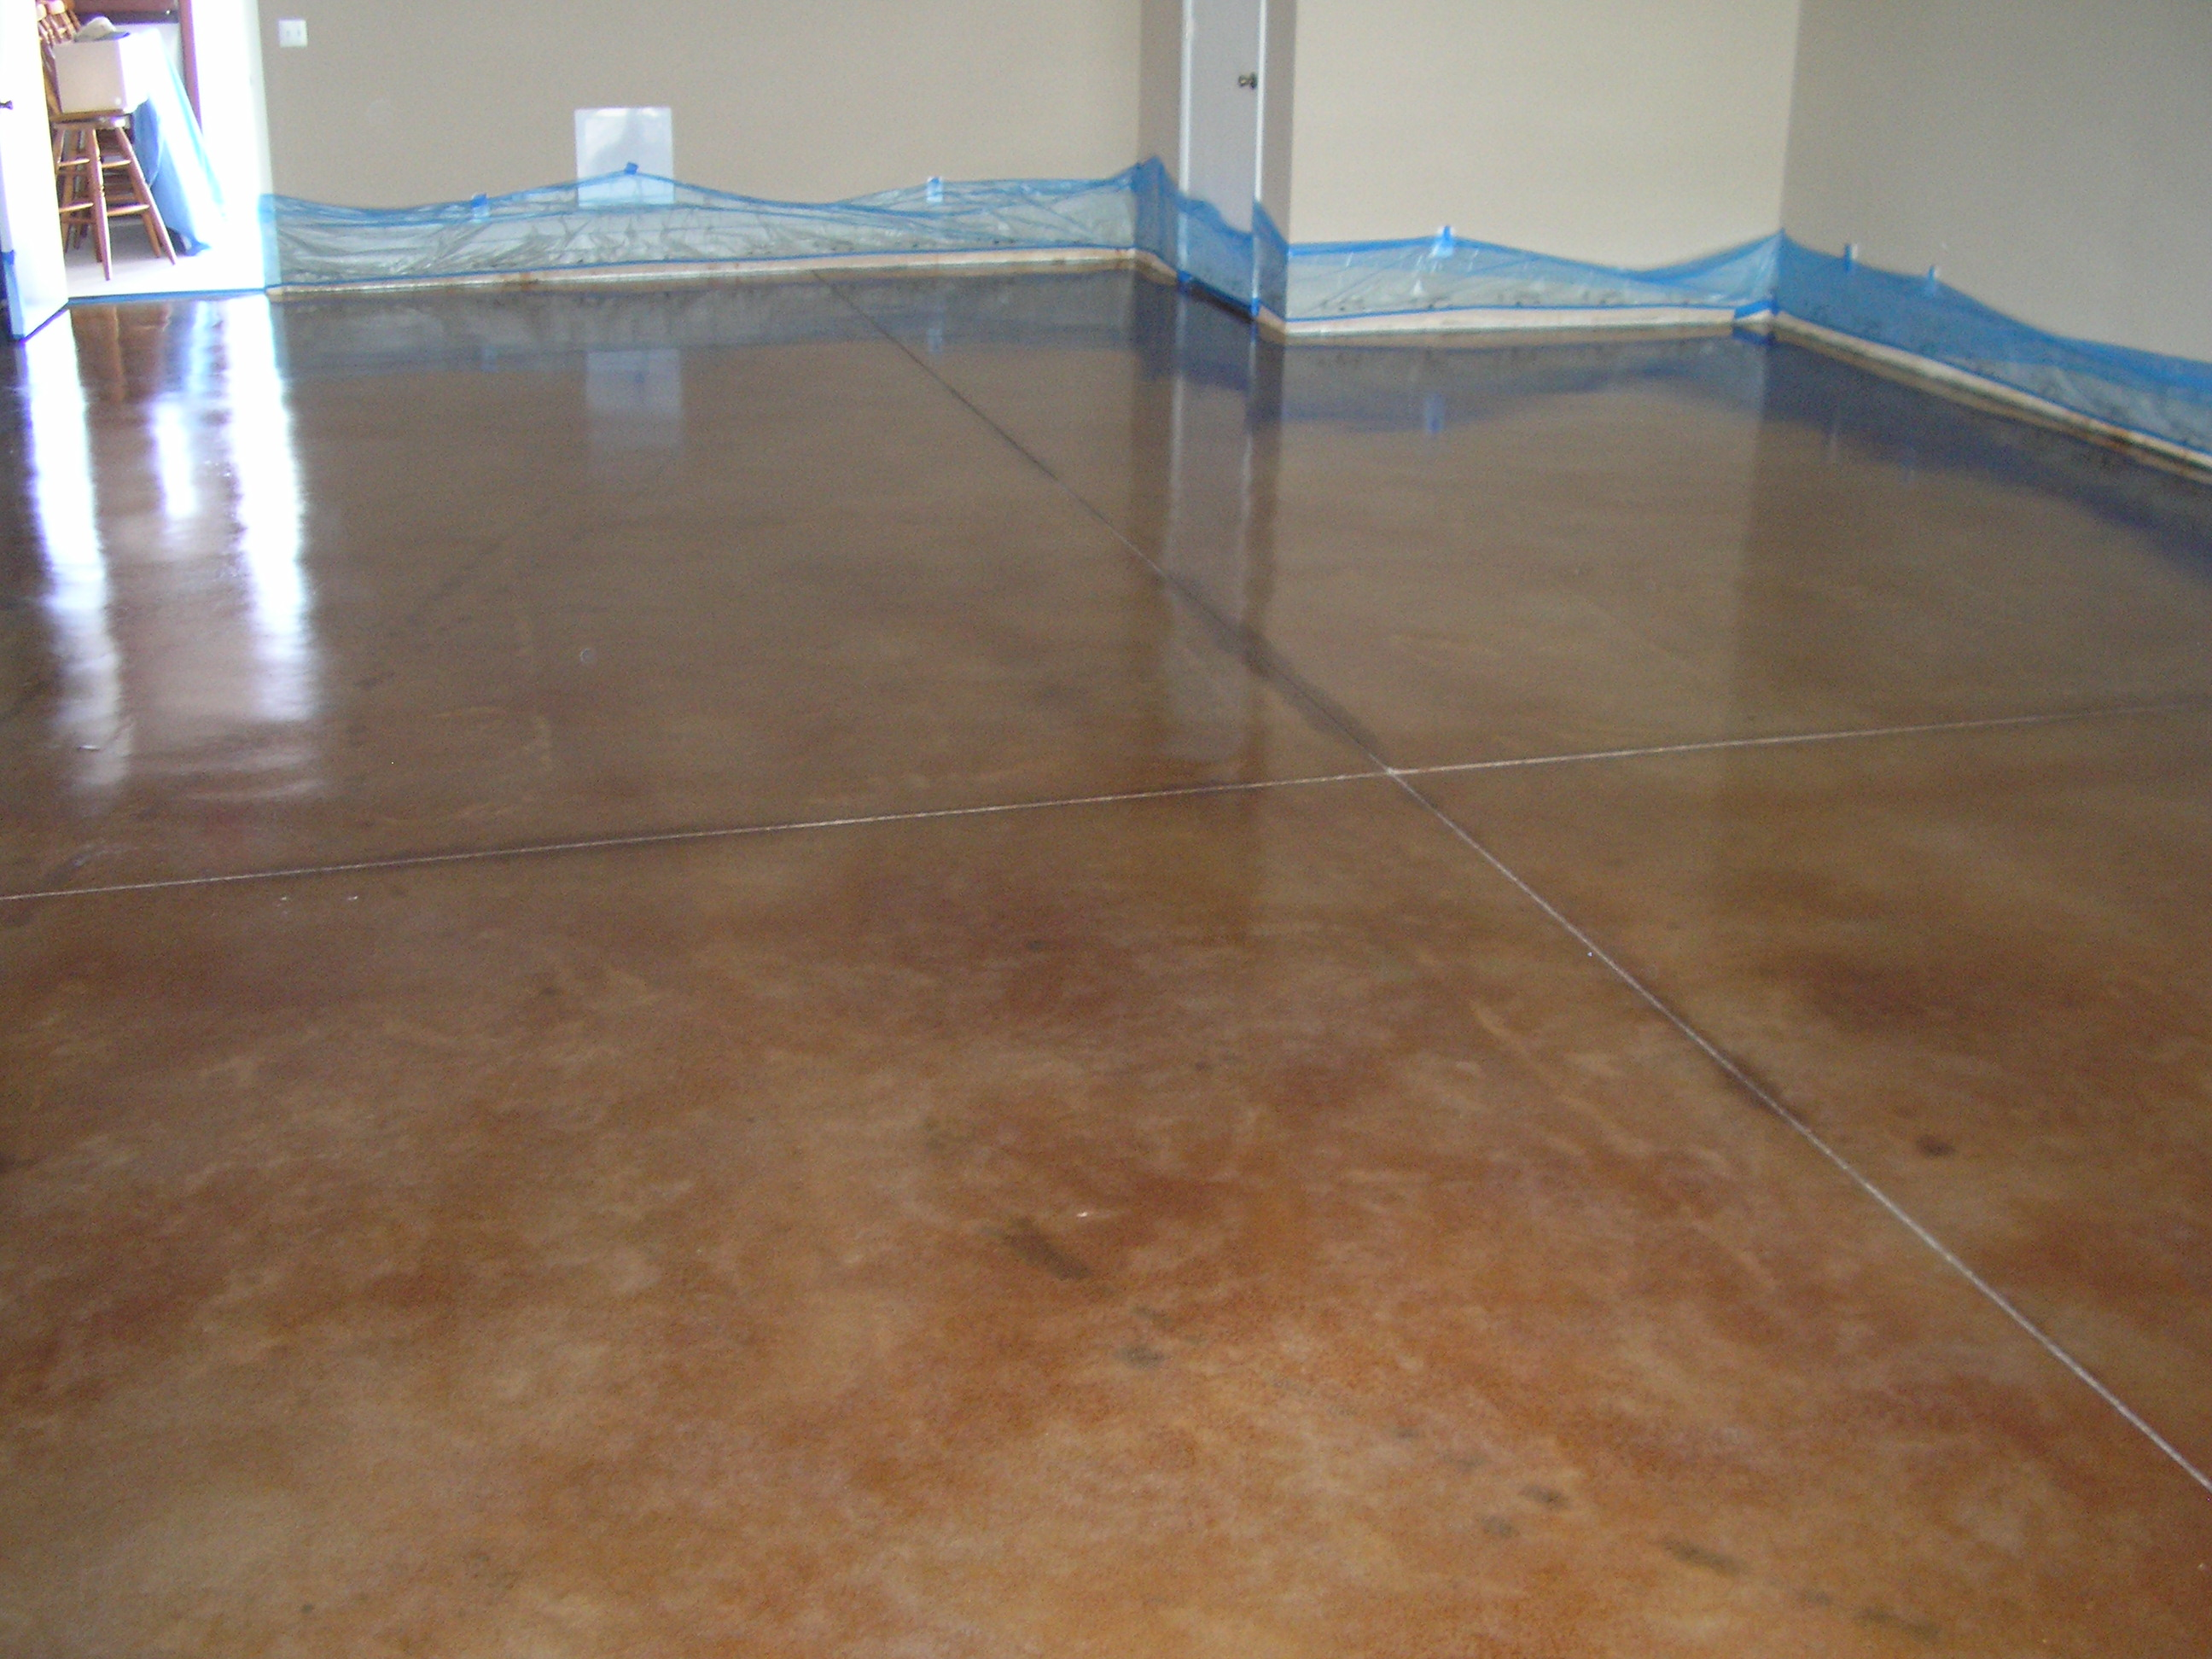 Concrete Slab Floors Durability Concrete Floors Are Durable And Strong